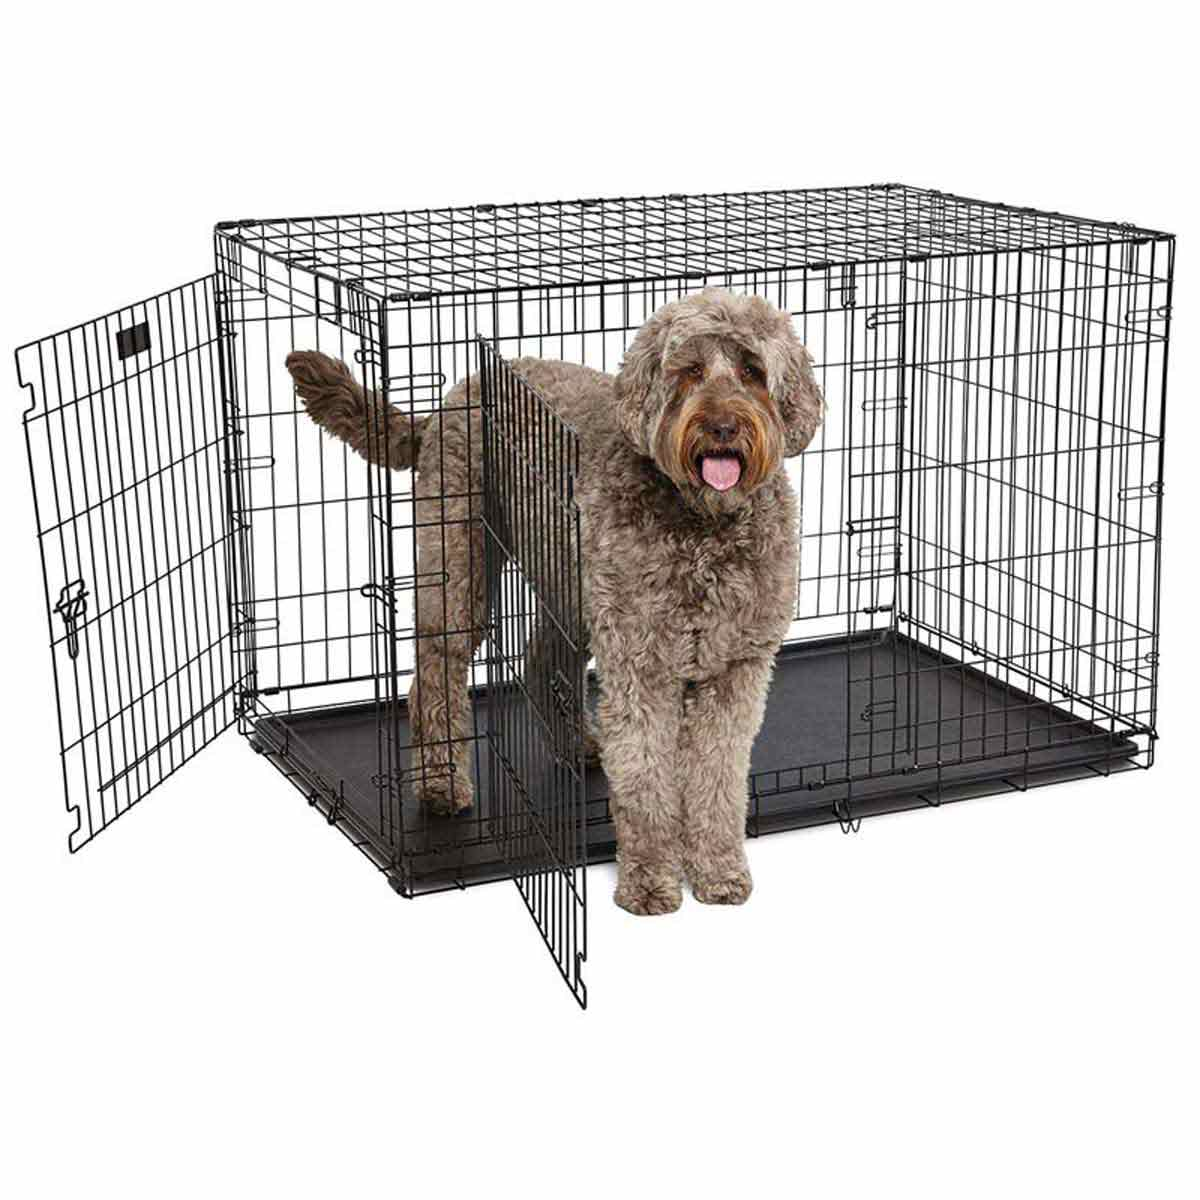 Midwest ConTour Crate Double Door for Large and Medium Dogs - 48 inches by 30 inches by 32 inches